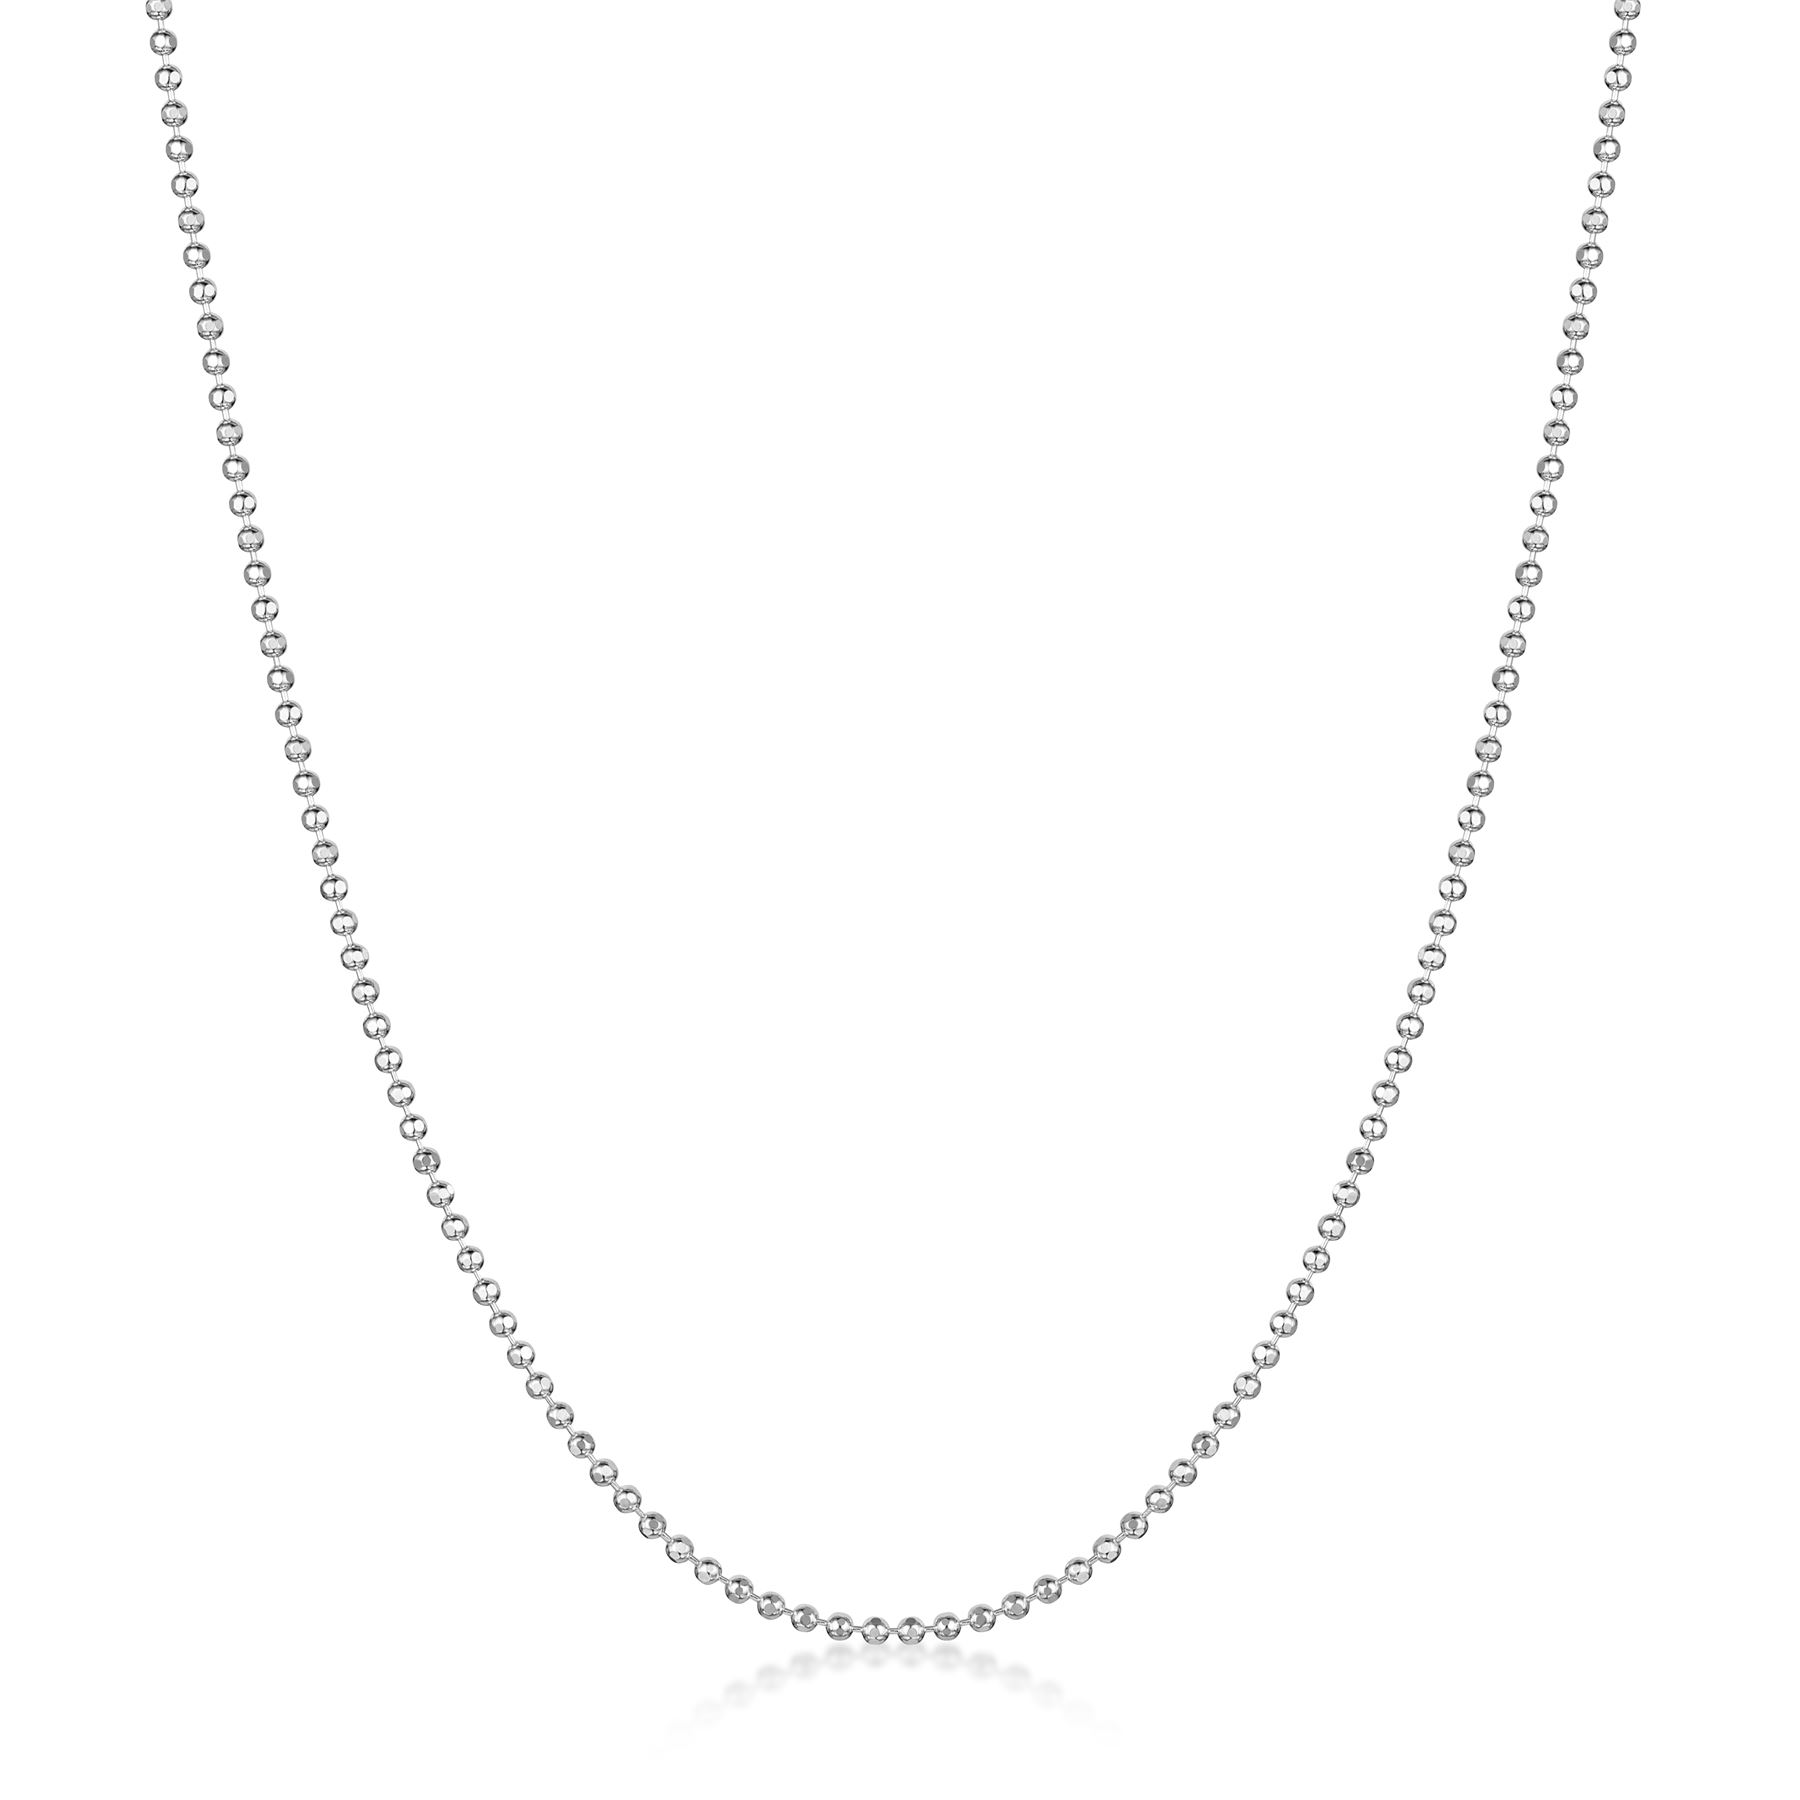 Amberta-Jewelry-Genuine-925-Sterling-Silver-Italian-Bead-Necklace-Ball-Chain thumbnail 3